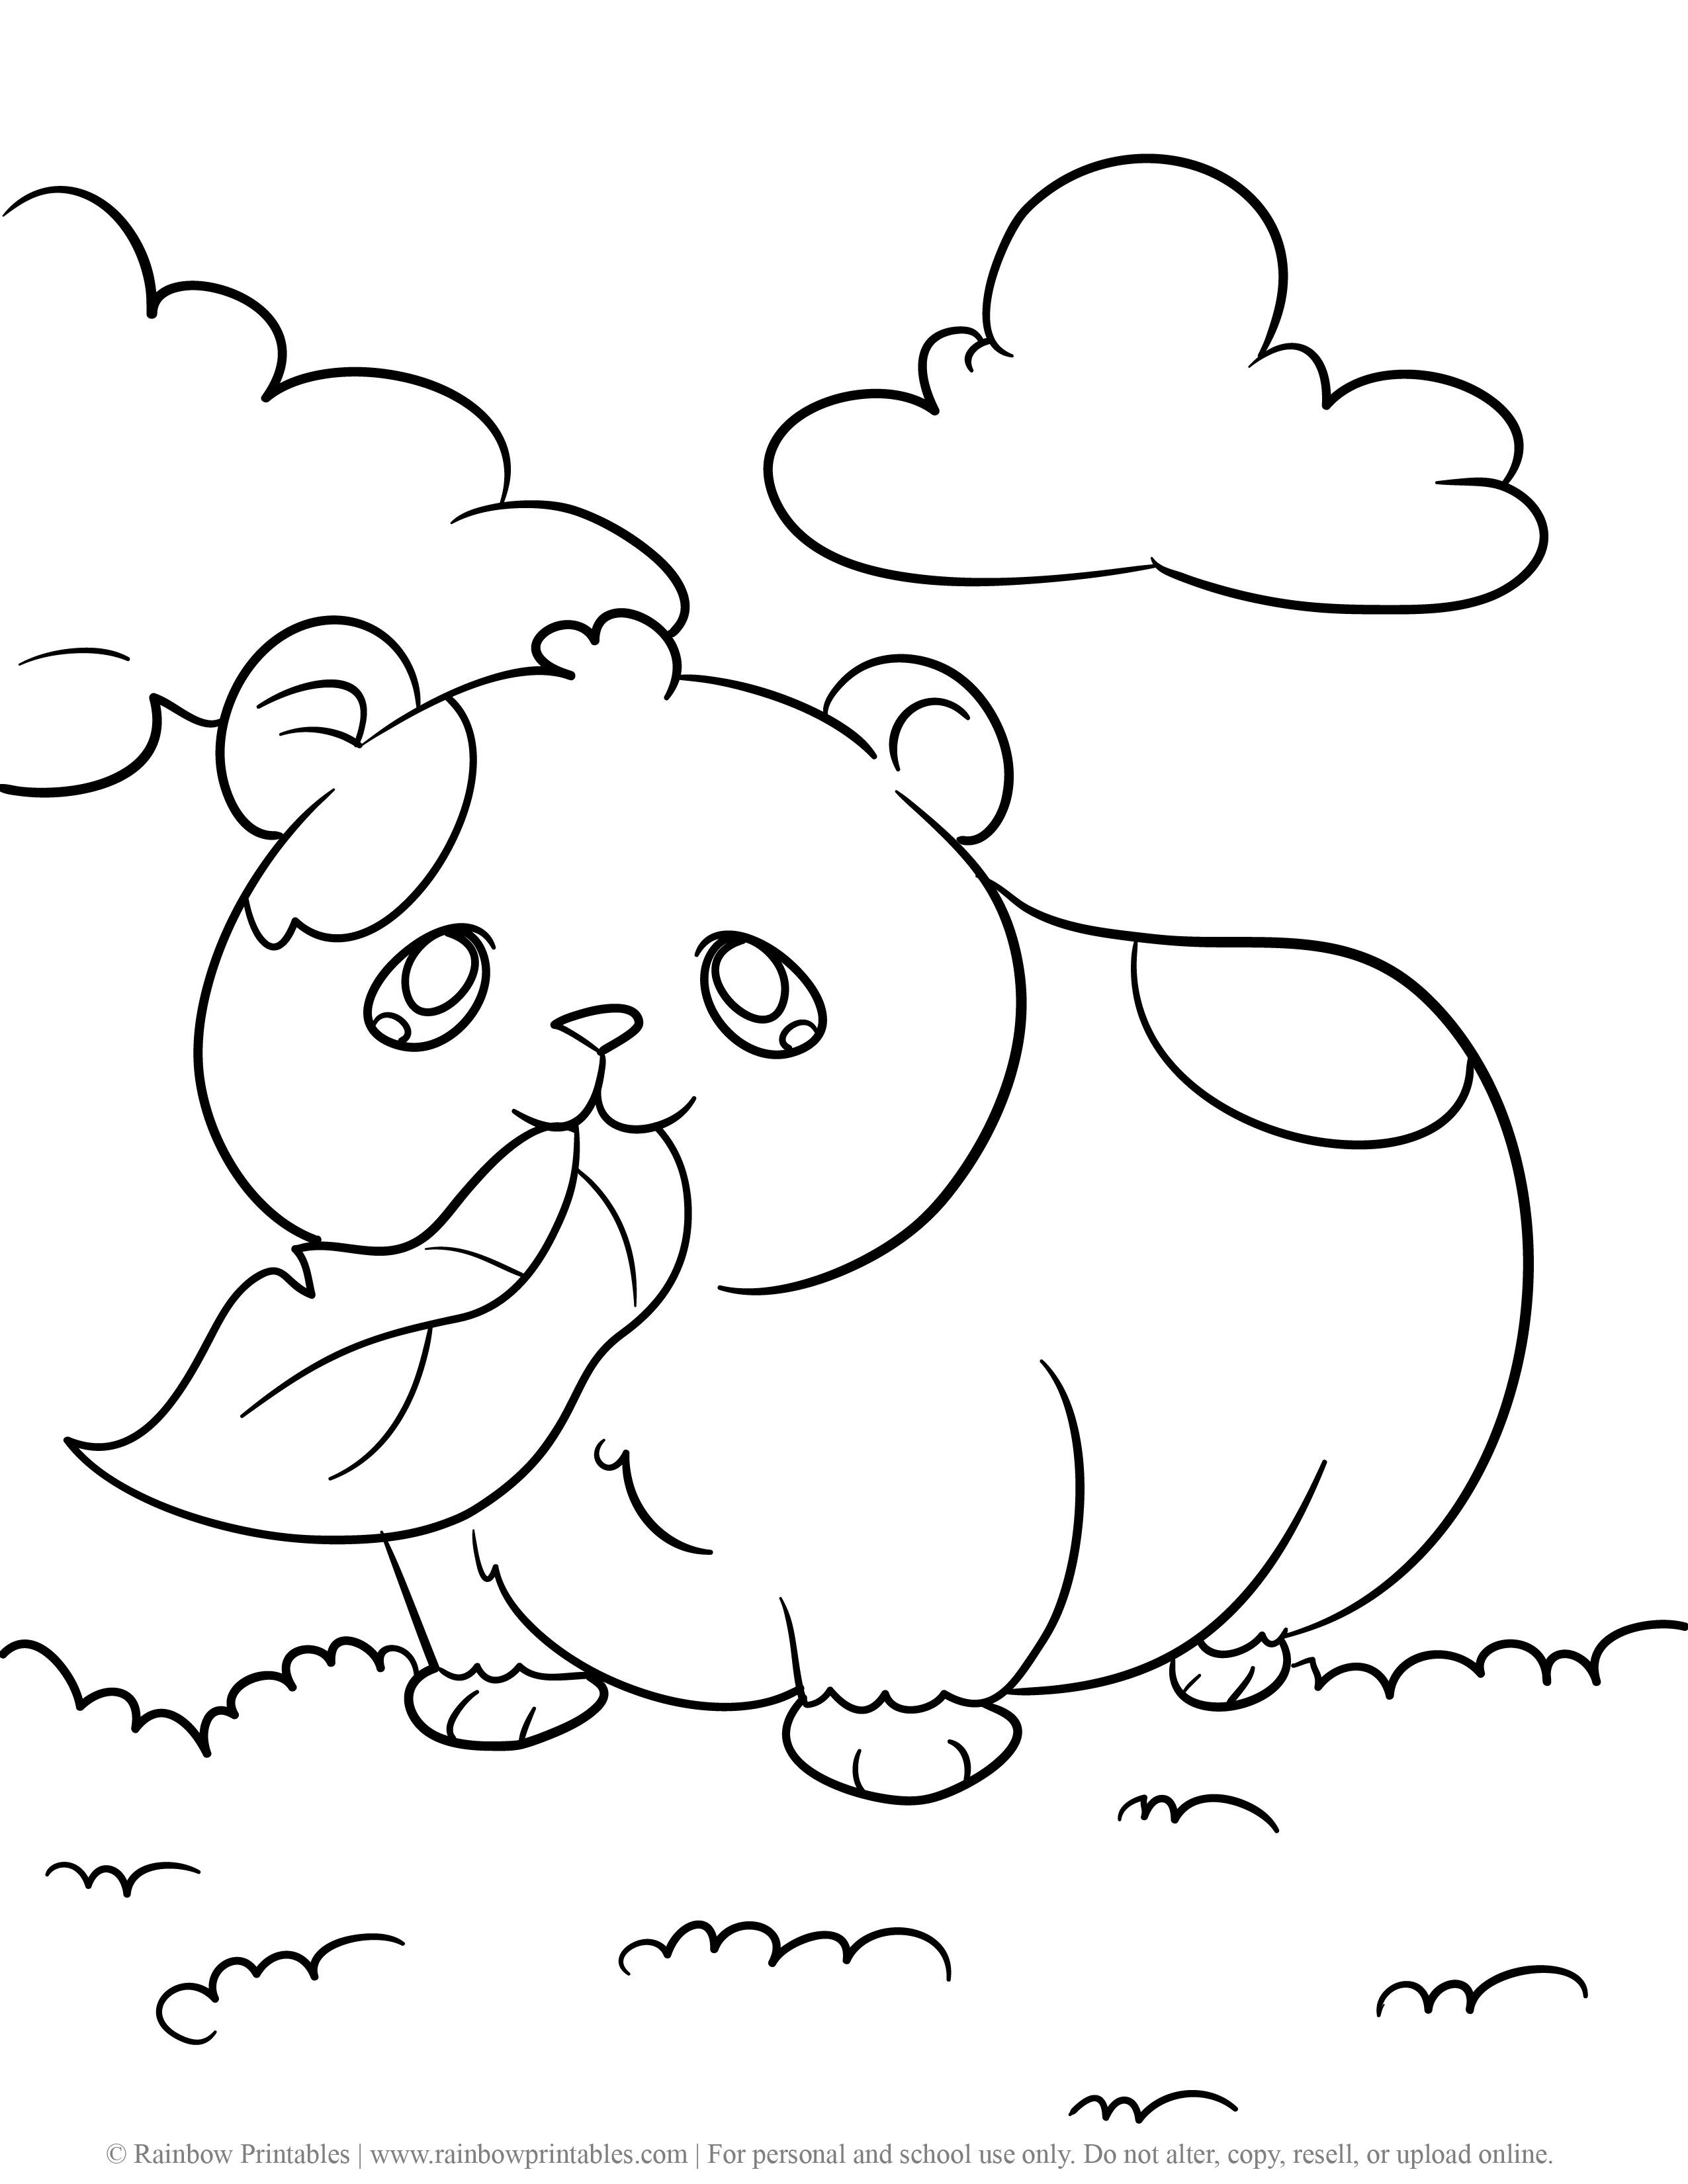 5 Free & Super Cute Hamster (Hamtaro) Coloring Pages For Kids